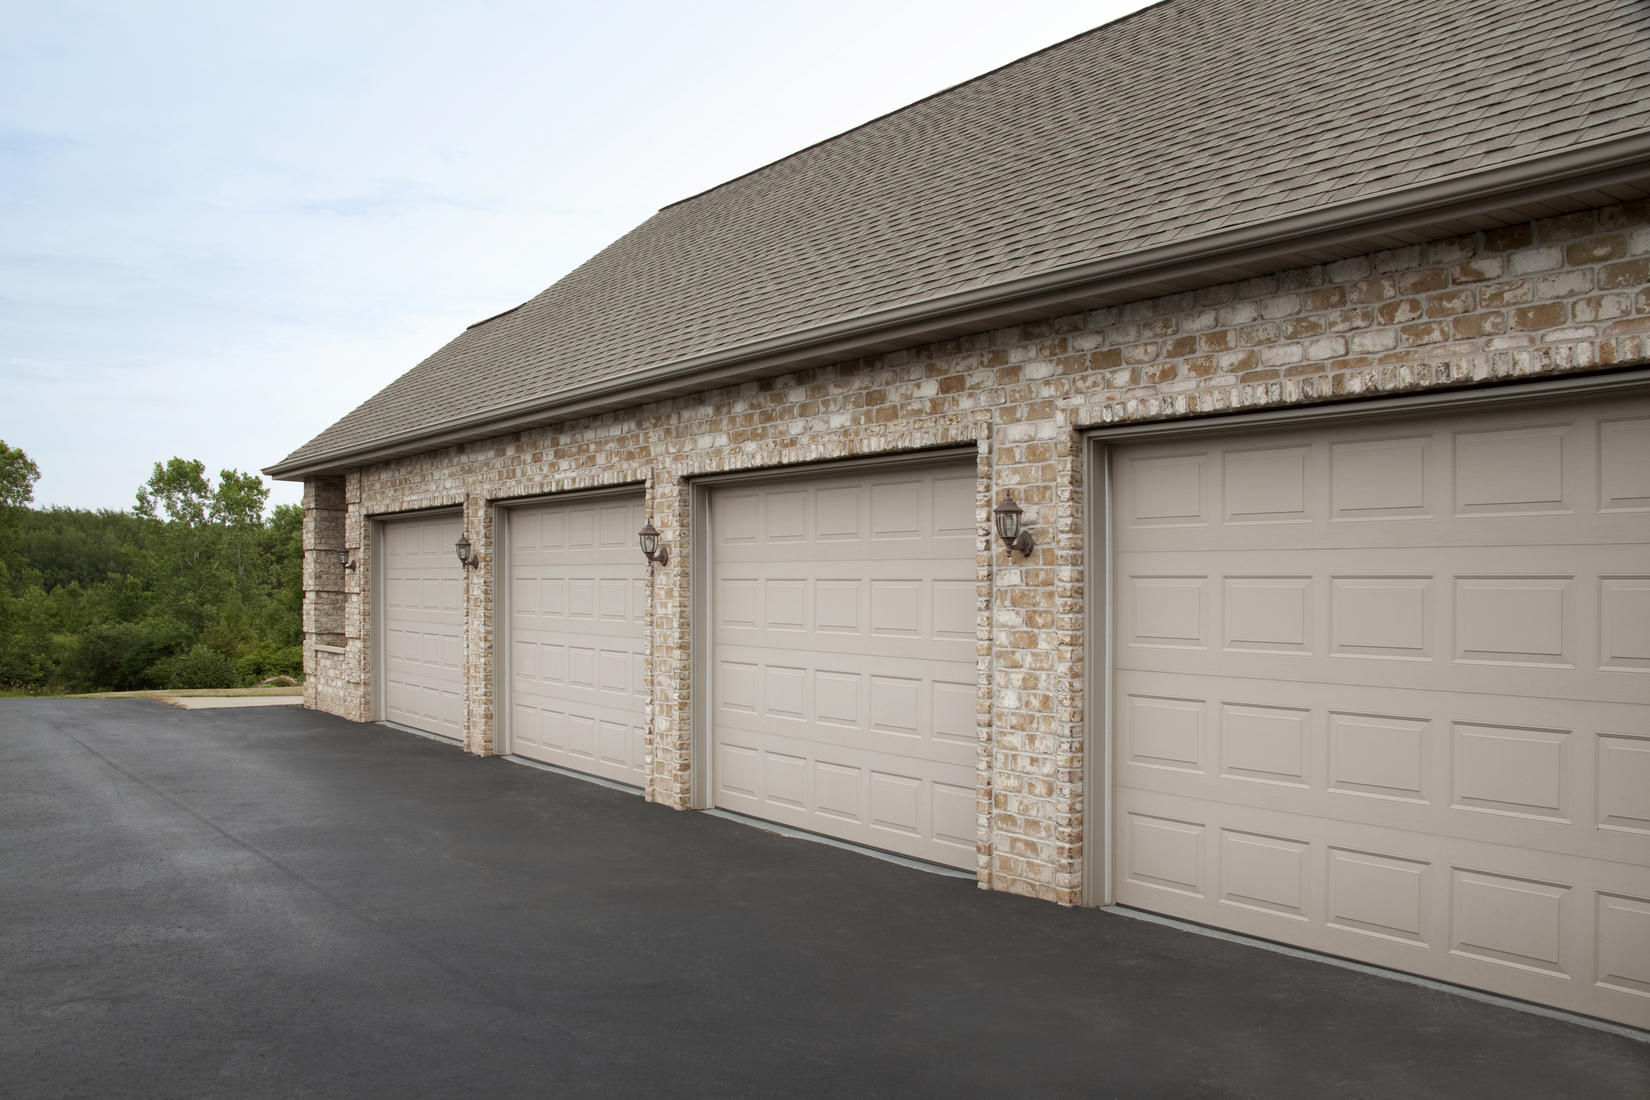 Garage Door Repair Fort Worth Coupons In Fort Worth Make Your Own Beautiful  HD Wallpapers, Images Over 1000+ [ralydesign.ml]